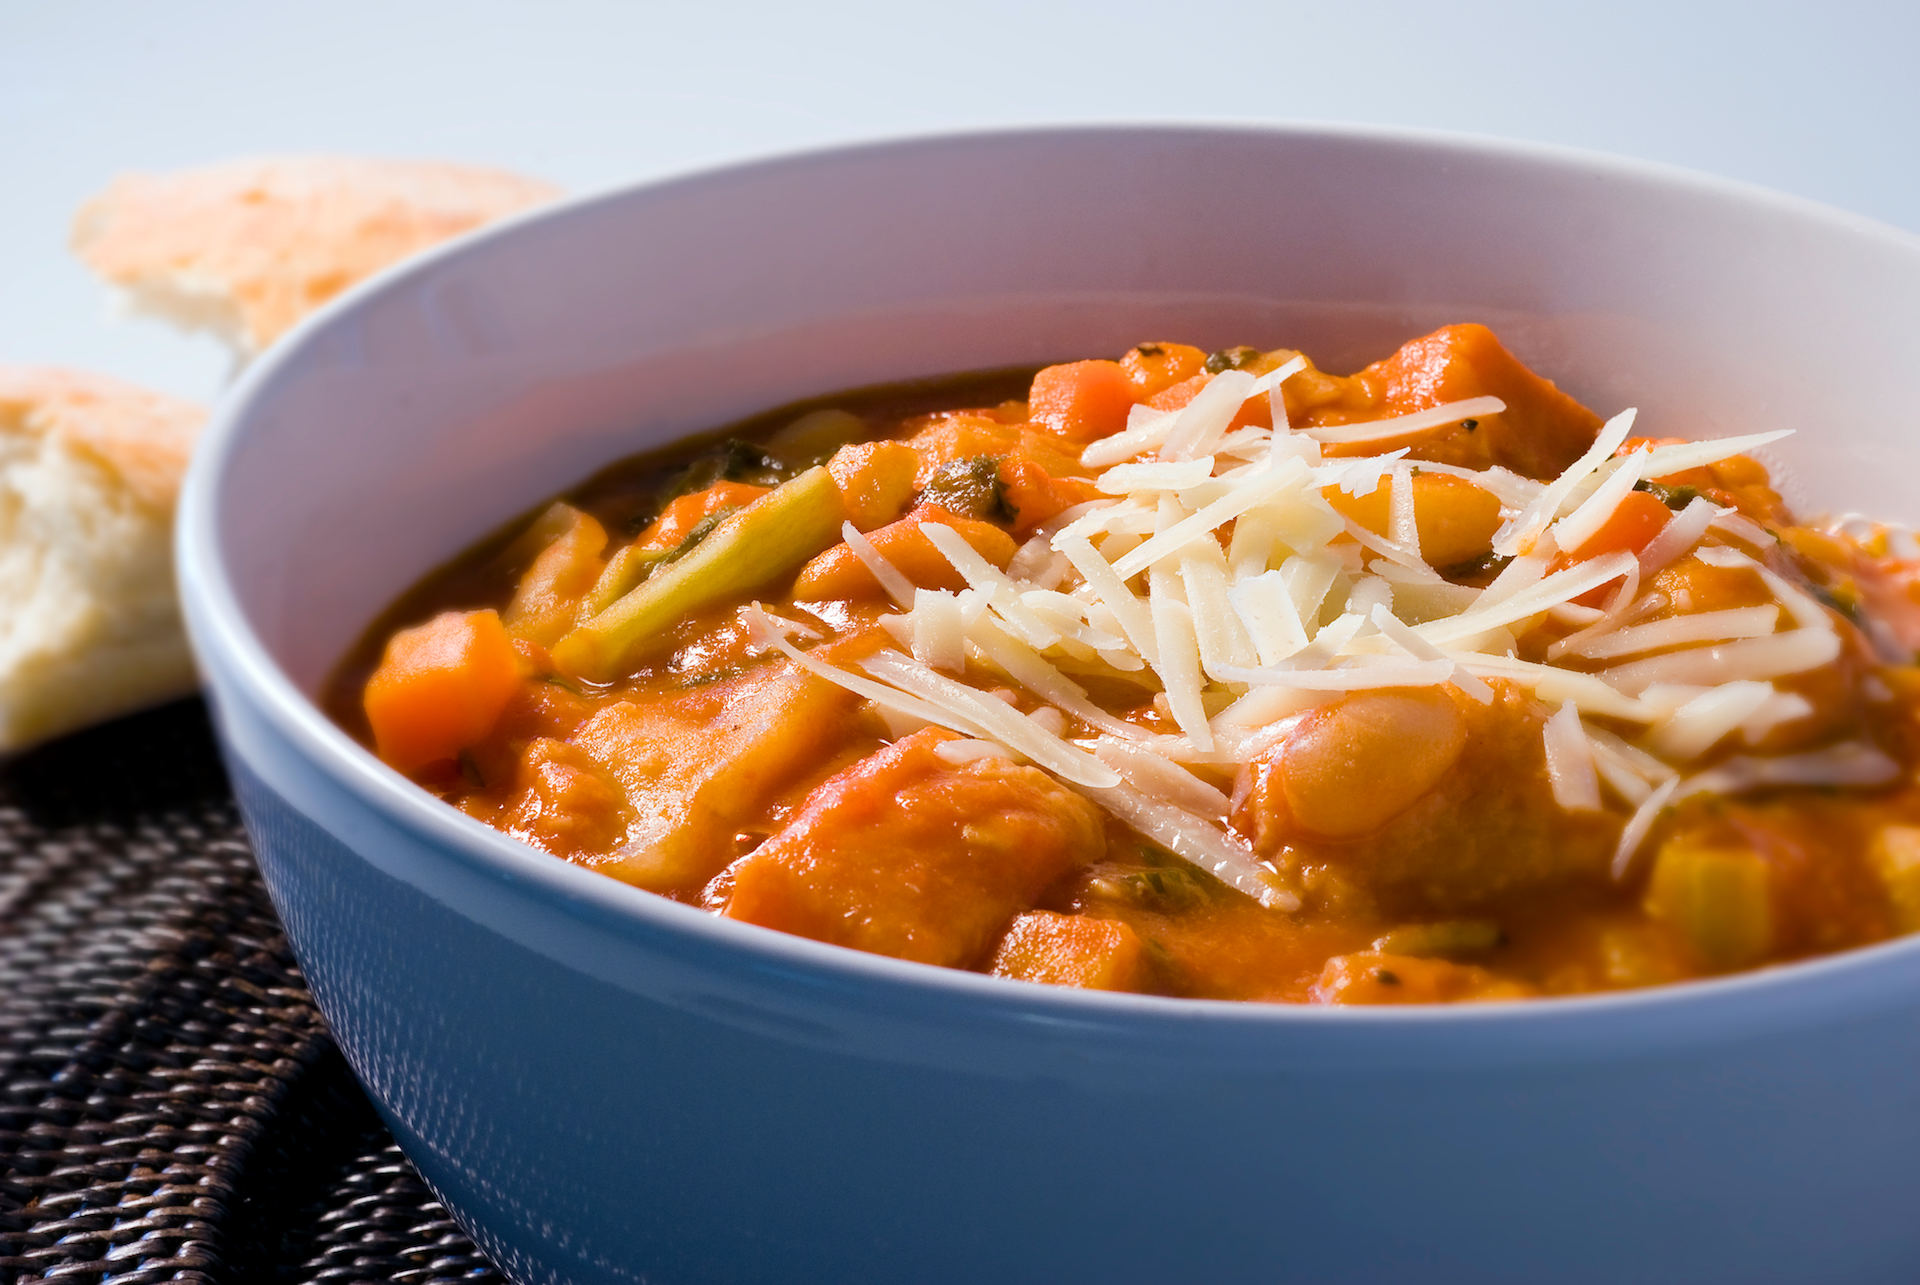 Hearty Italian ribollita pairs the fresh & healthy flavor of Italian vegetables with rich chicken broth, cannellini beans, fresh herbs, rustic bread and Parmesan cheese for a satisfying one-dish meal.